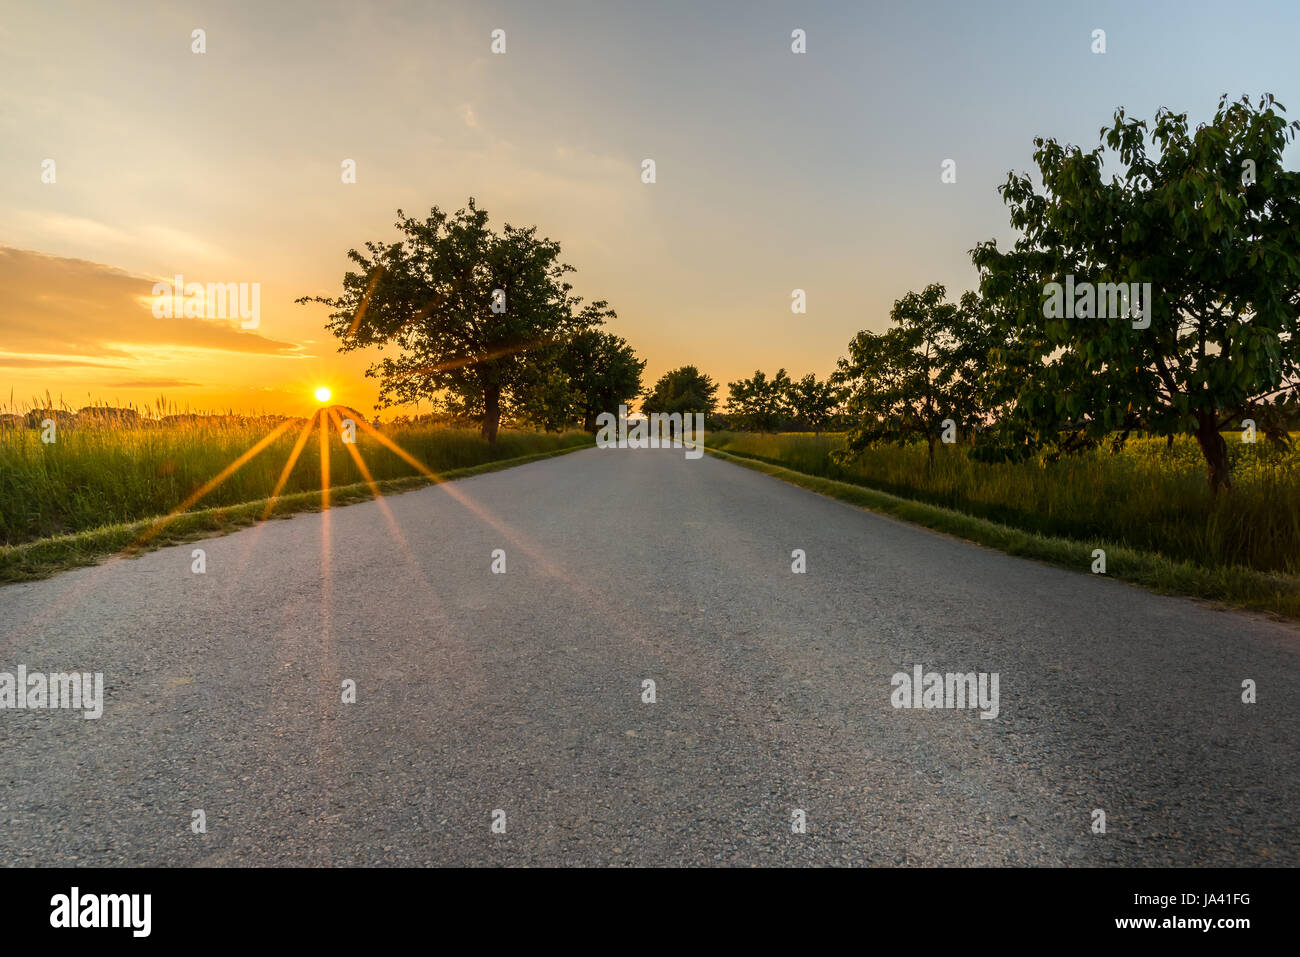 Horizontal Photo Of Country Road With Sunset In Background Grey Trees On Both Sides And Clear Blue Evening Sky Without Any Vehicles